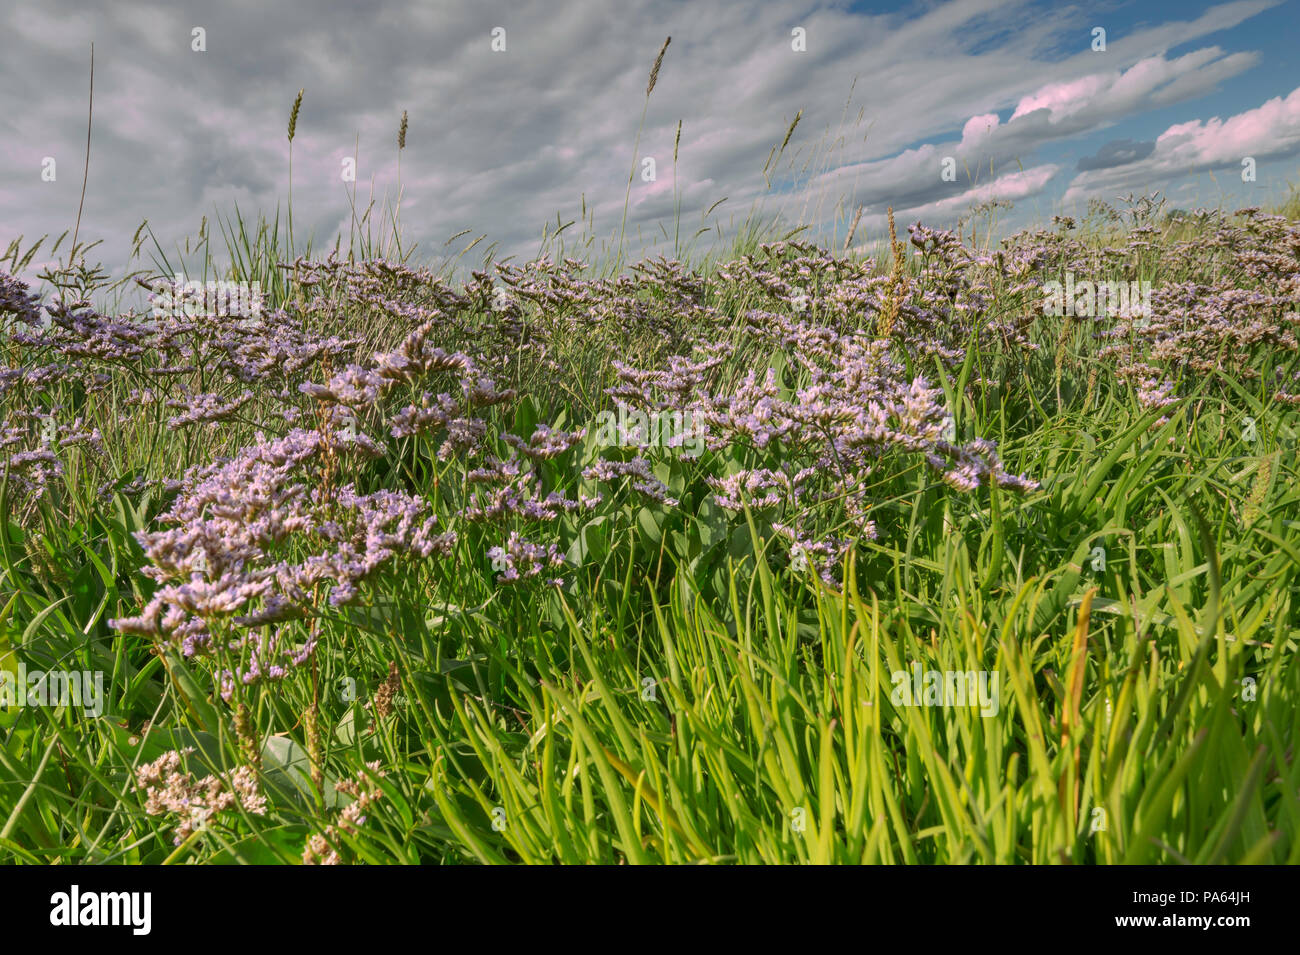 Sea Lavender(Limonium vulgare) on a North West Norfolk marsh, Kings lynn, United kingdom. - Stock Image